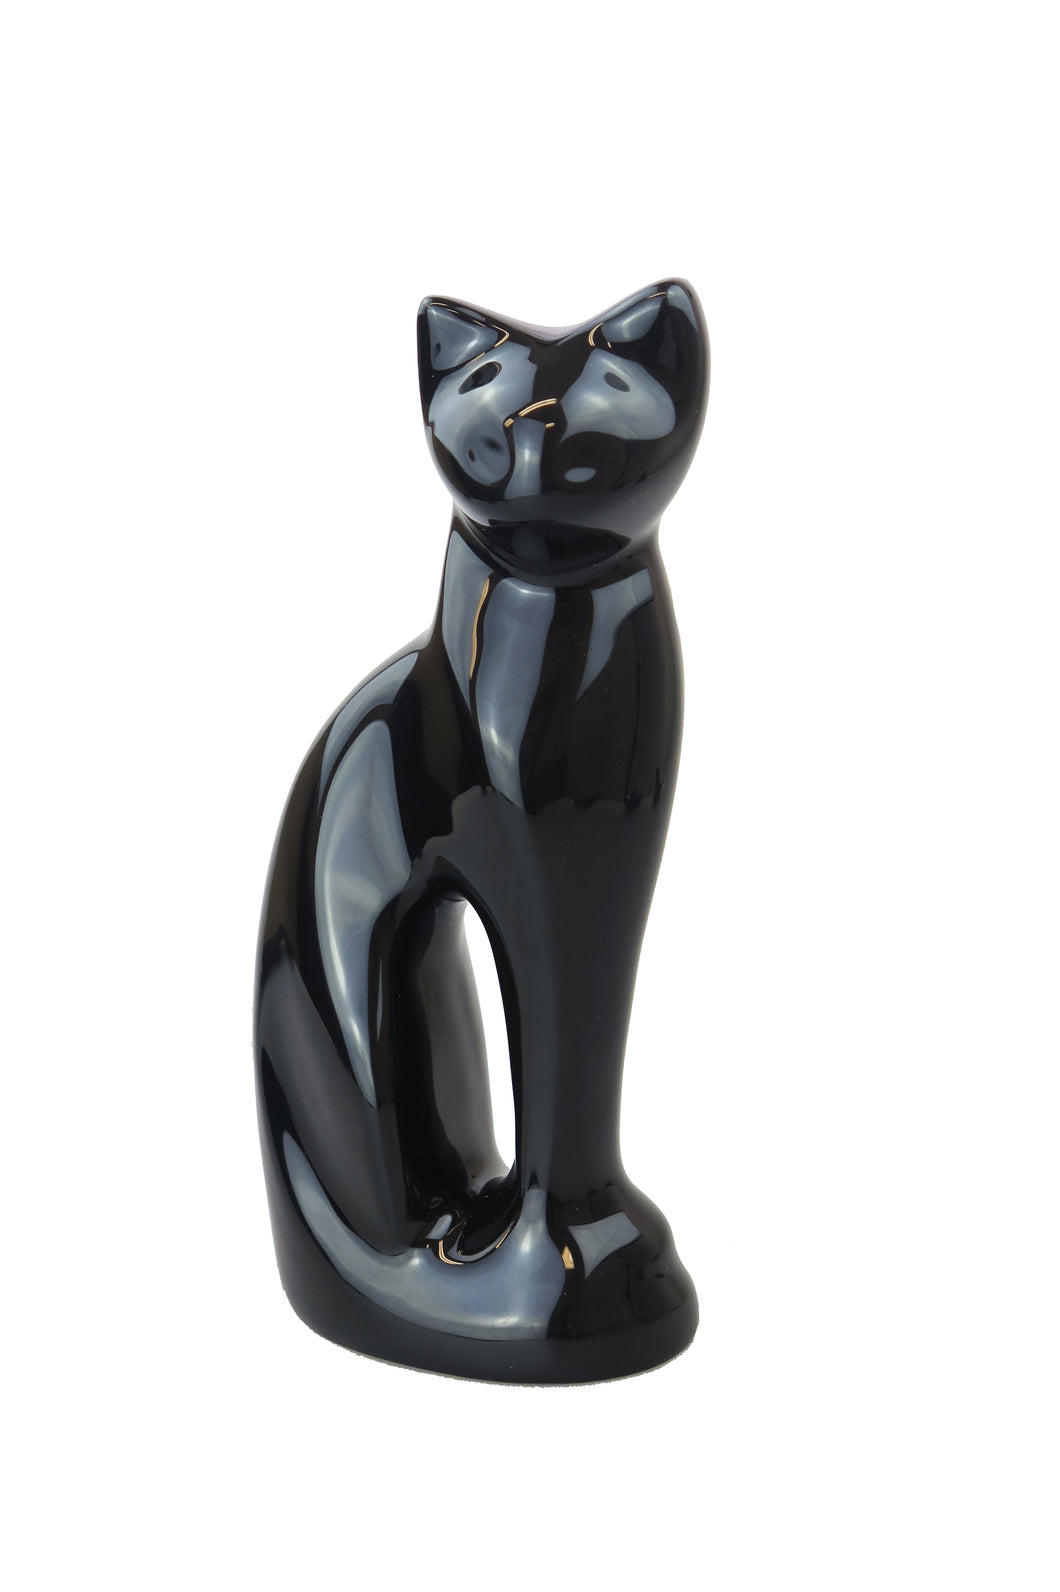 Black Cat Shaped Pet Urn